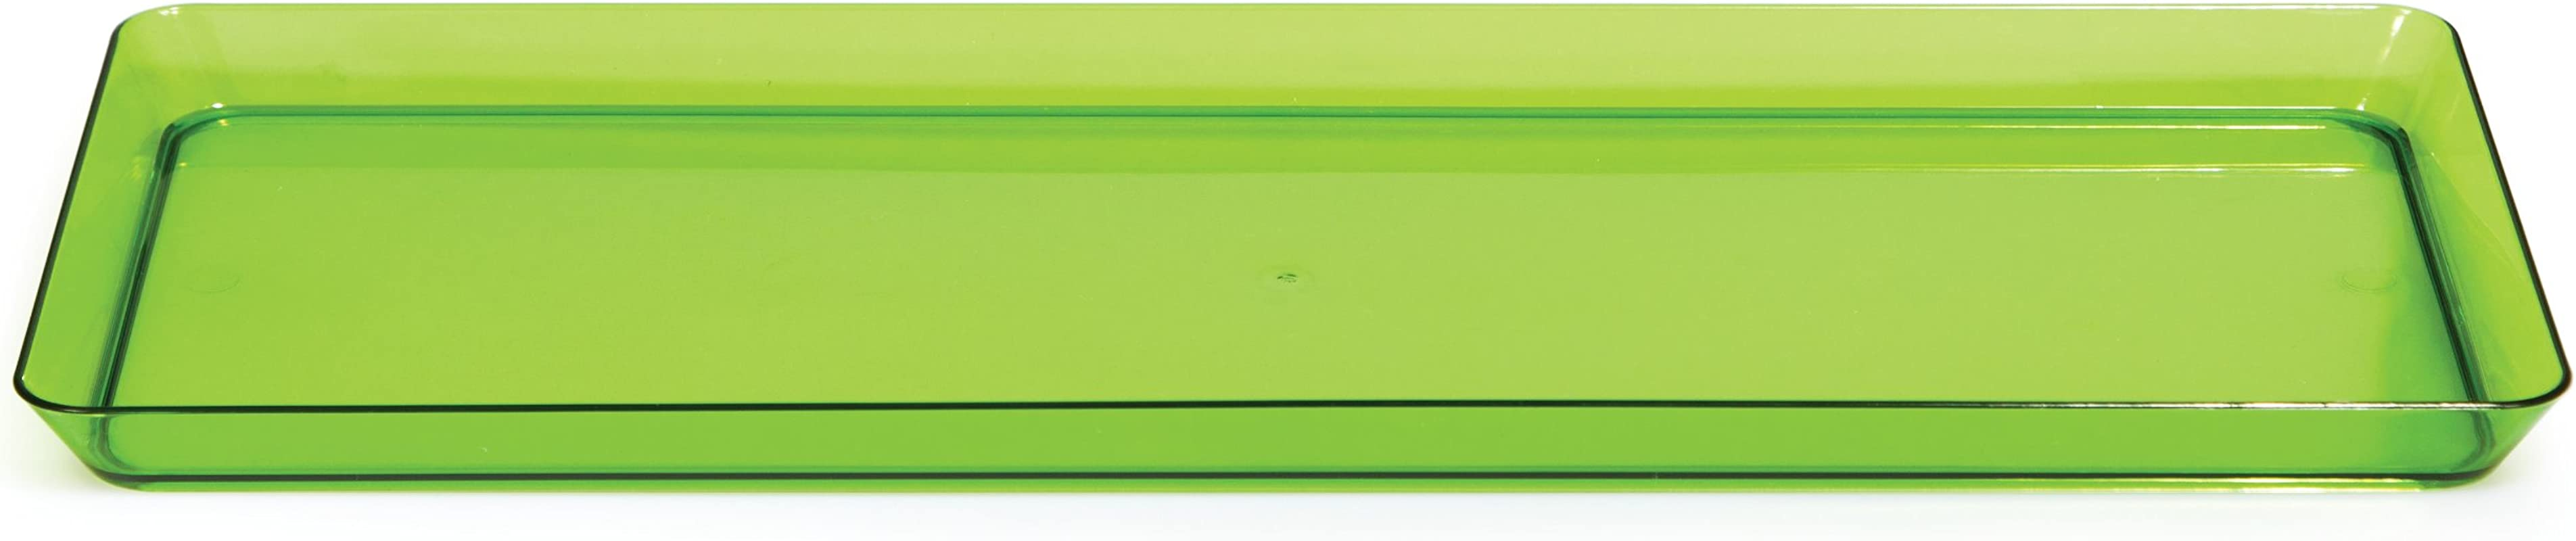 Creative Converting 179431 Rectangle Plastic Serving Tray 15 5 Inch X 6 Inch Translucent Green